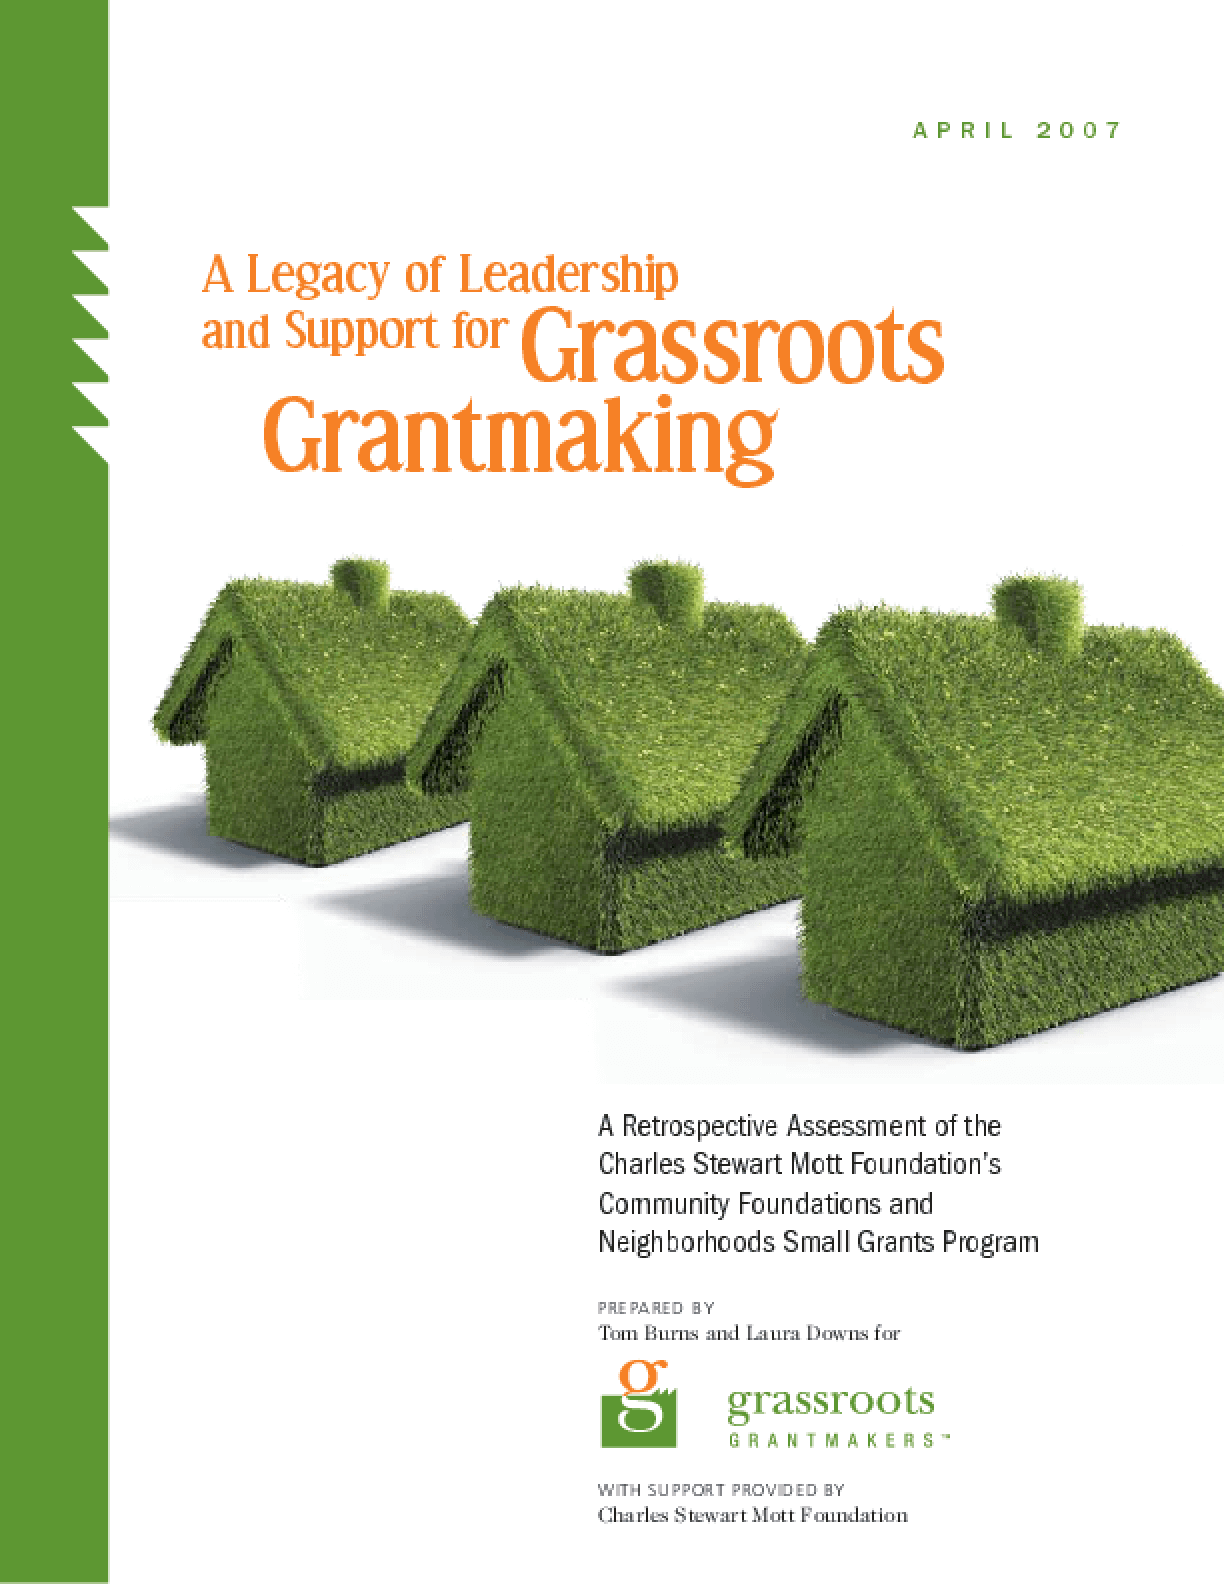 A Legacy of Leadership and Support for Grassroots Grantmaking: A Retrospective Assessment of the Charles Stewart Mott Foundation's Community Foundations and Neighborhoods Small Grants Program